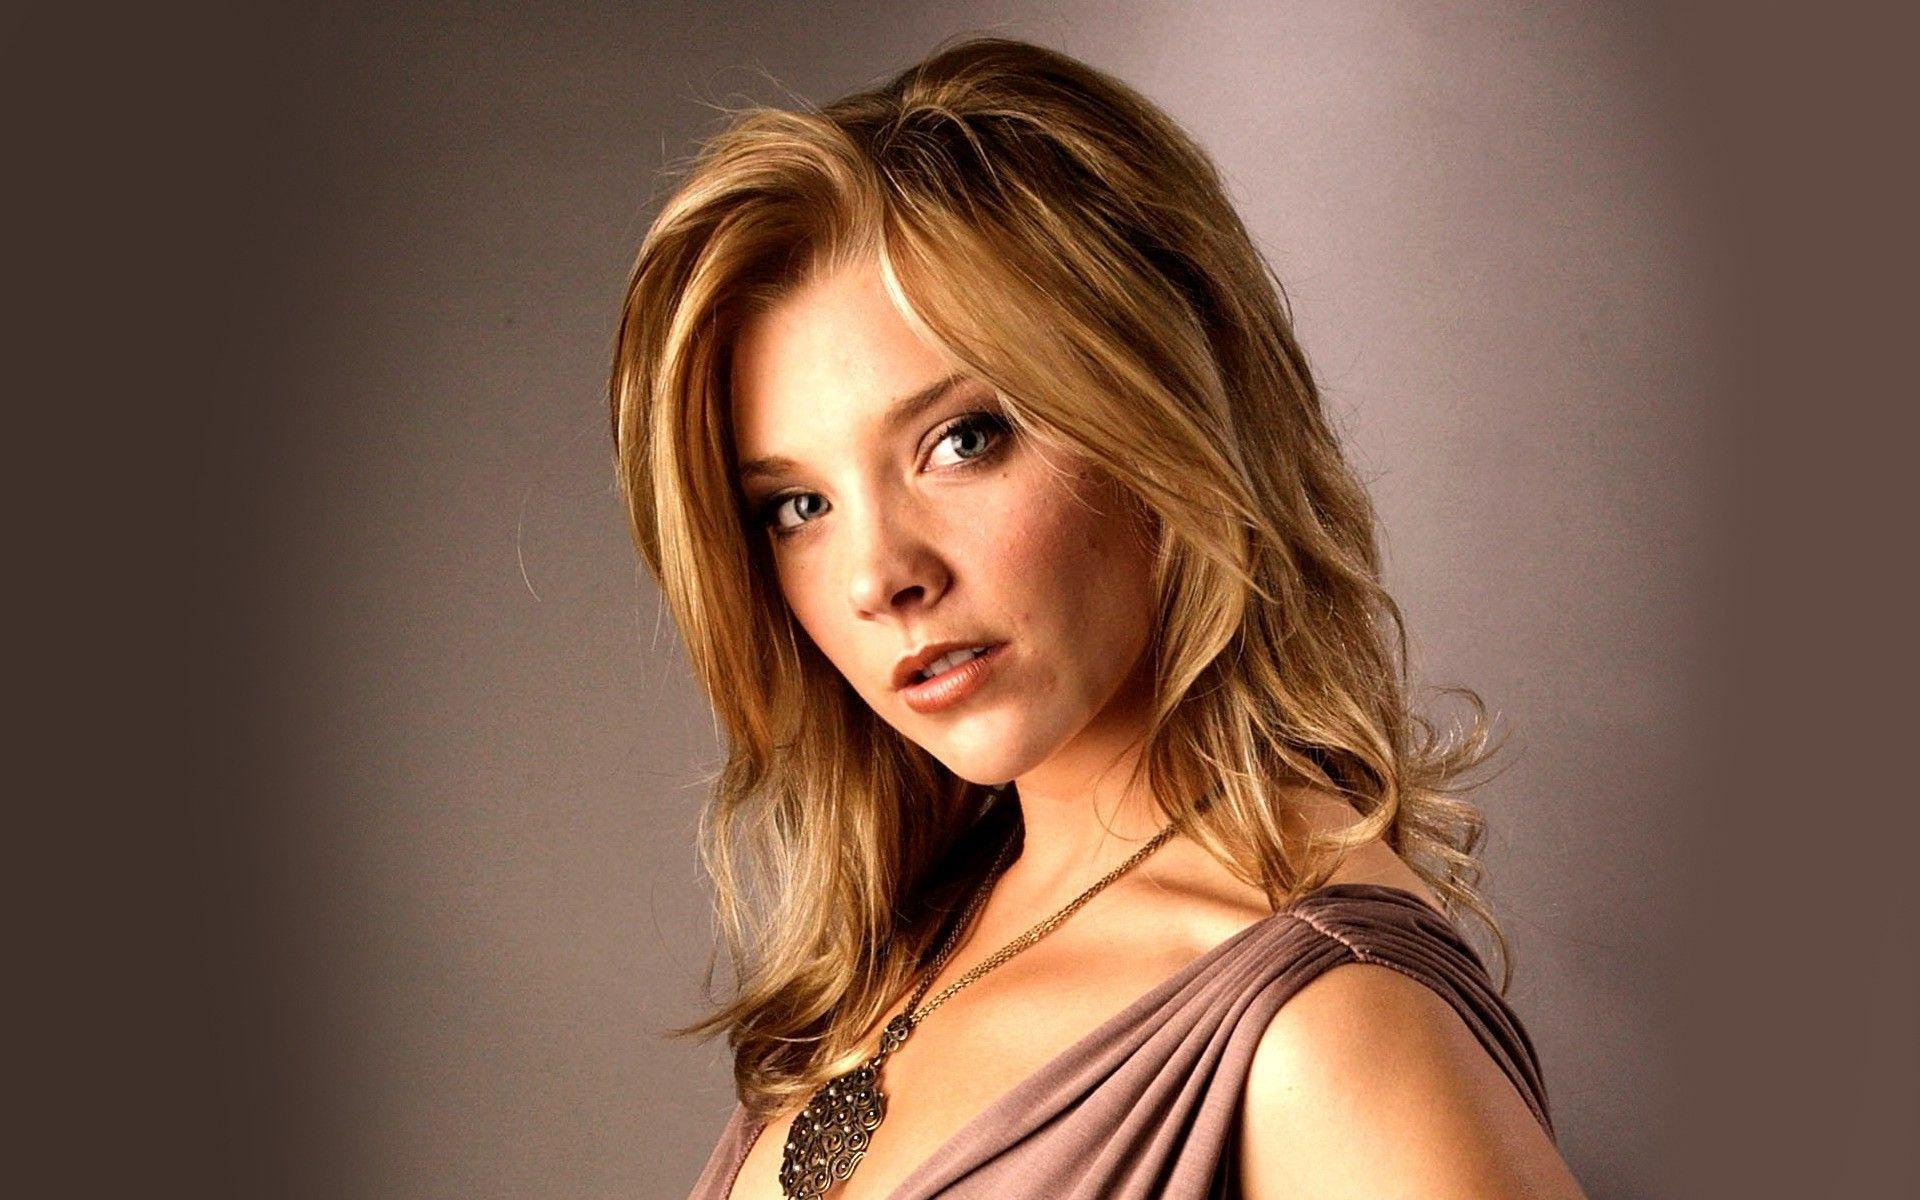 Natalie Dormer Wallpapers - Wallpaper Cave